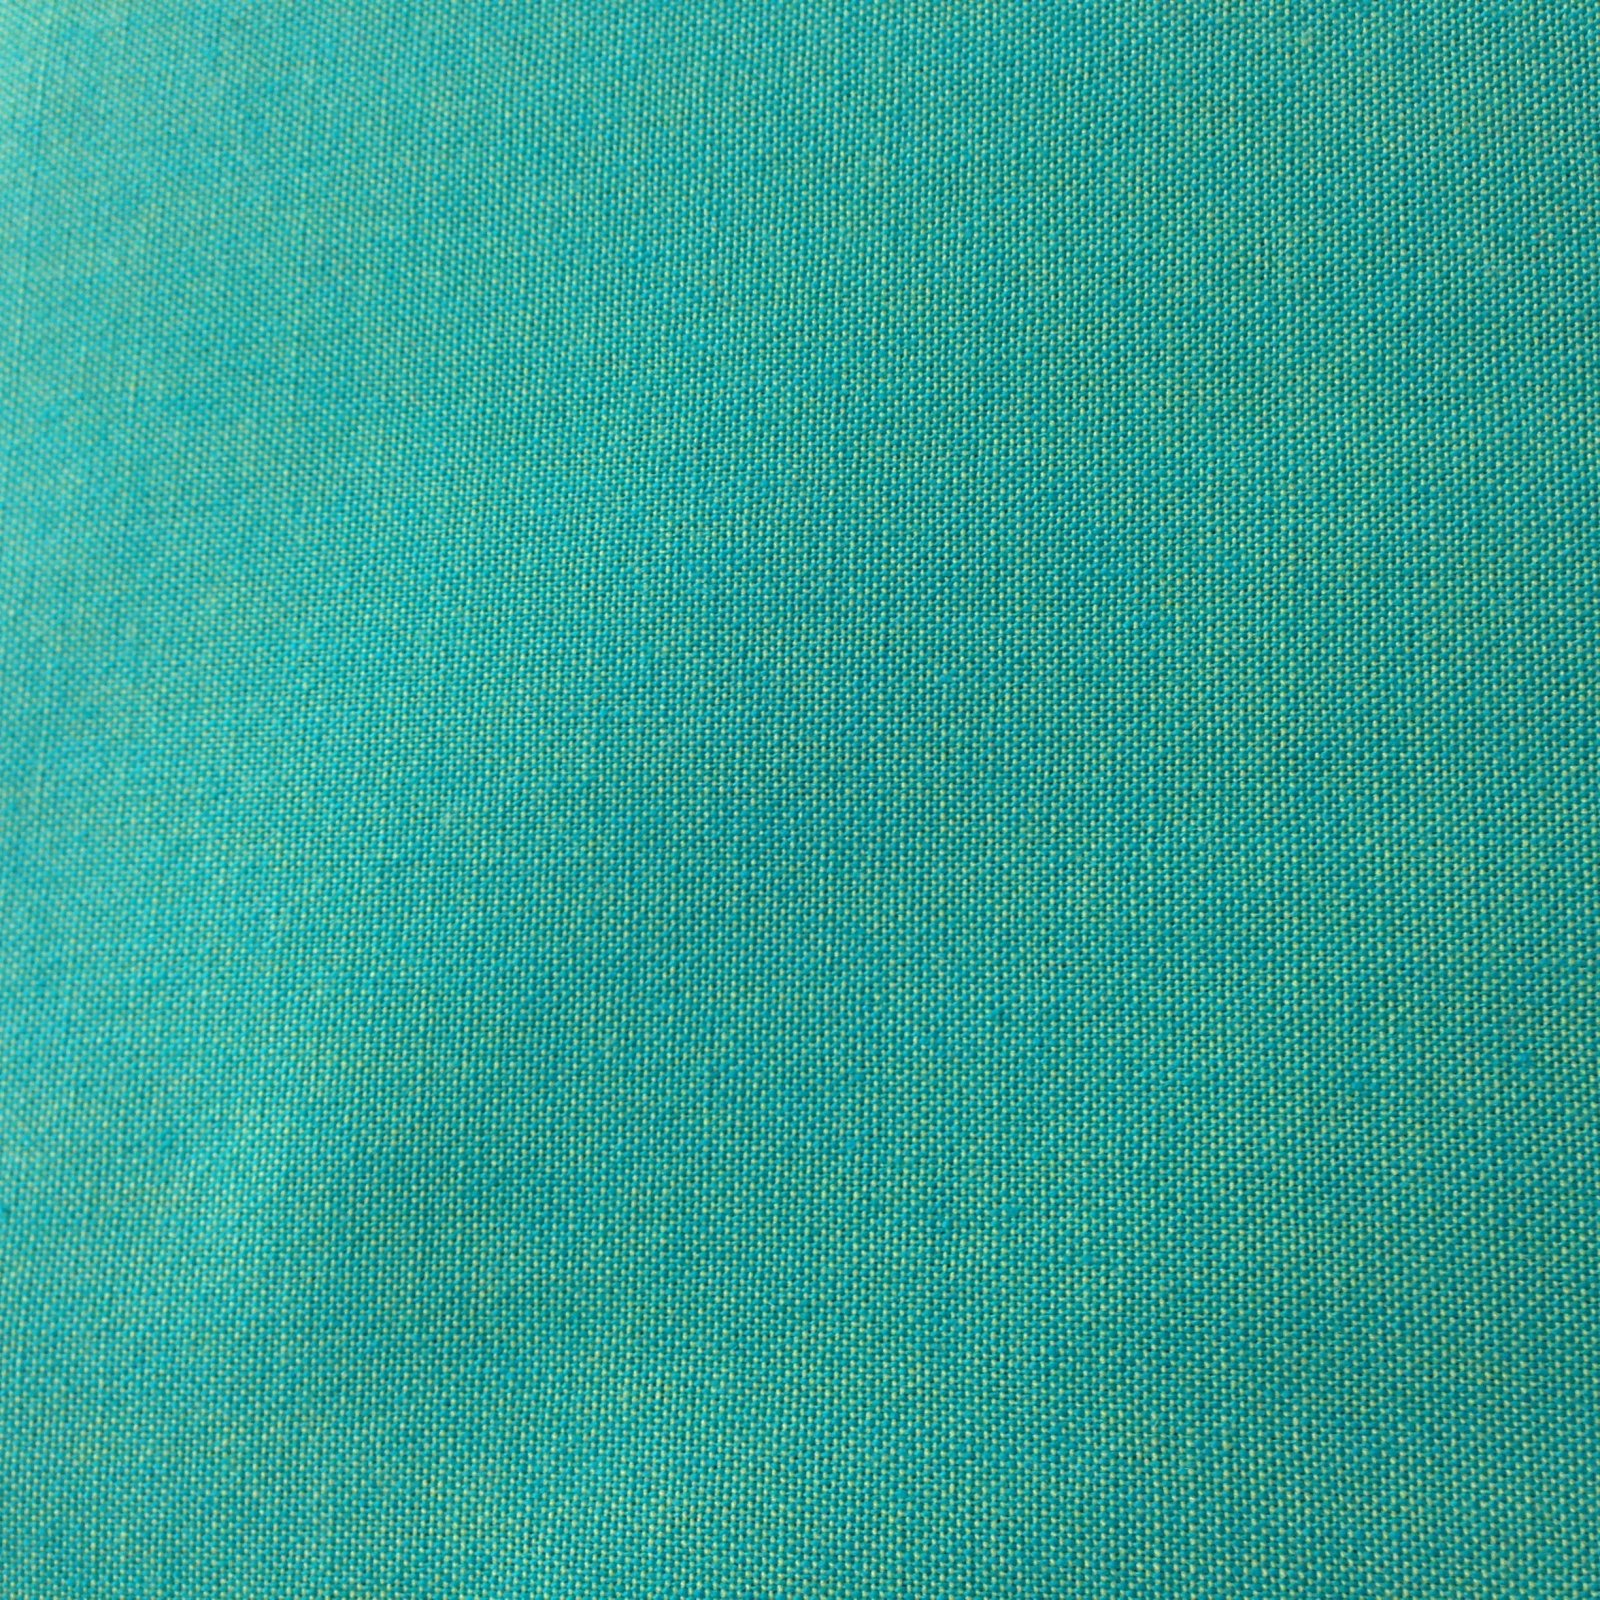 Kokka - Lightweight Canvas - Teal